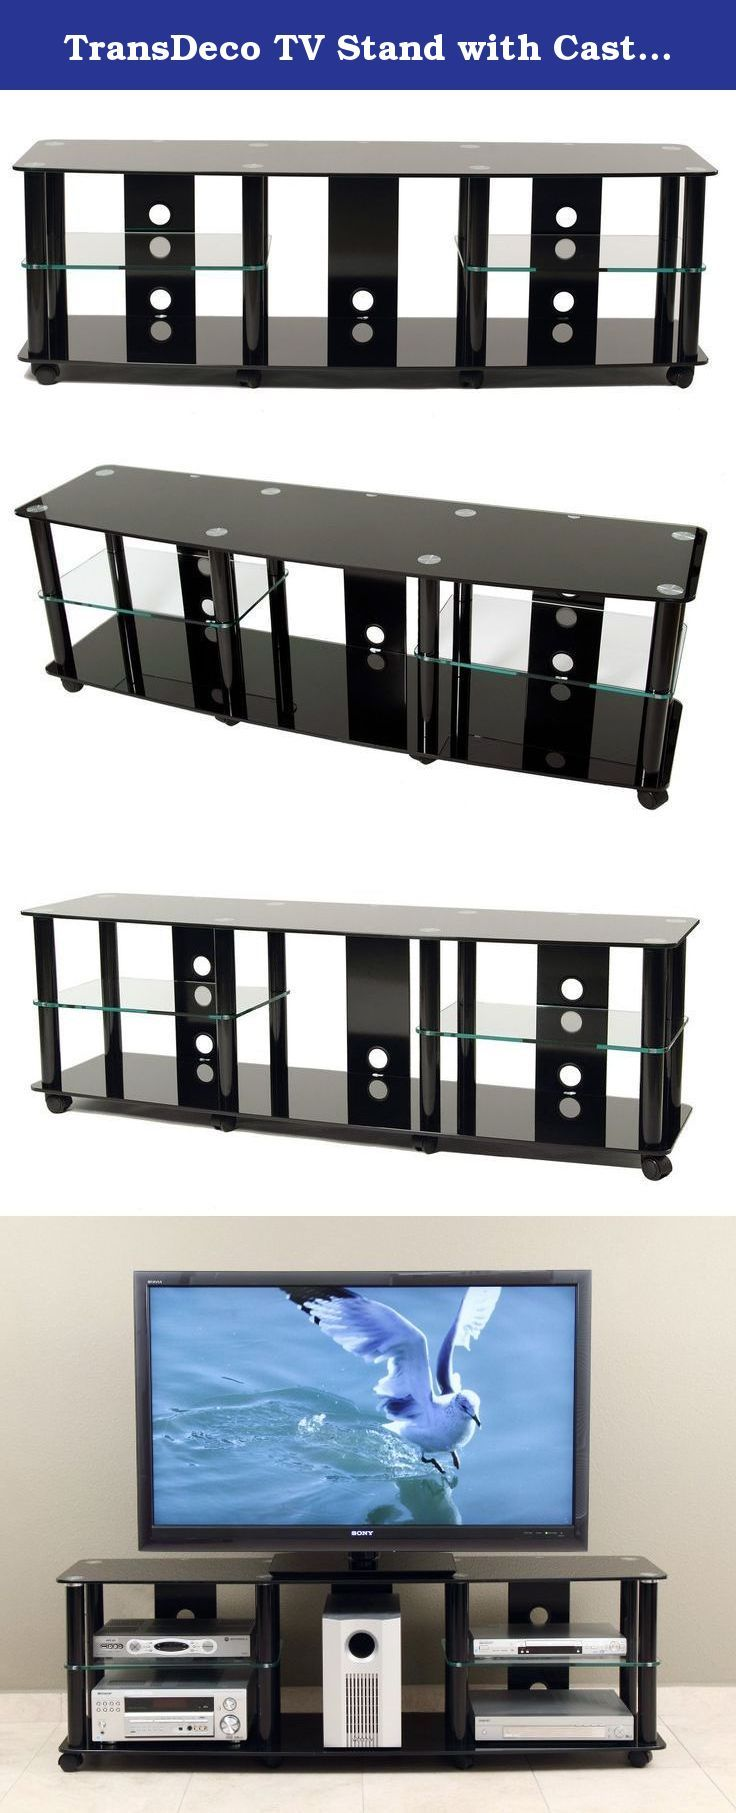 """TransDeco TV Stand with Caster for 35 to 70-Inch Plasma/LED/LCD TV. Accommodate up to 70"""" plasma, DLP, LCD and LED TV; Five AV component shelves to house all your audio video components and center channel speaker; Stylish curve front tempered safety glass with bevel edges; Cable management system to hide cables & wires; Commercial grade casters for mobility and easy AV components set up; Constructed with tempered safety glass and metal with high gloss black finish; Contemporary design..."""